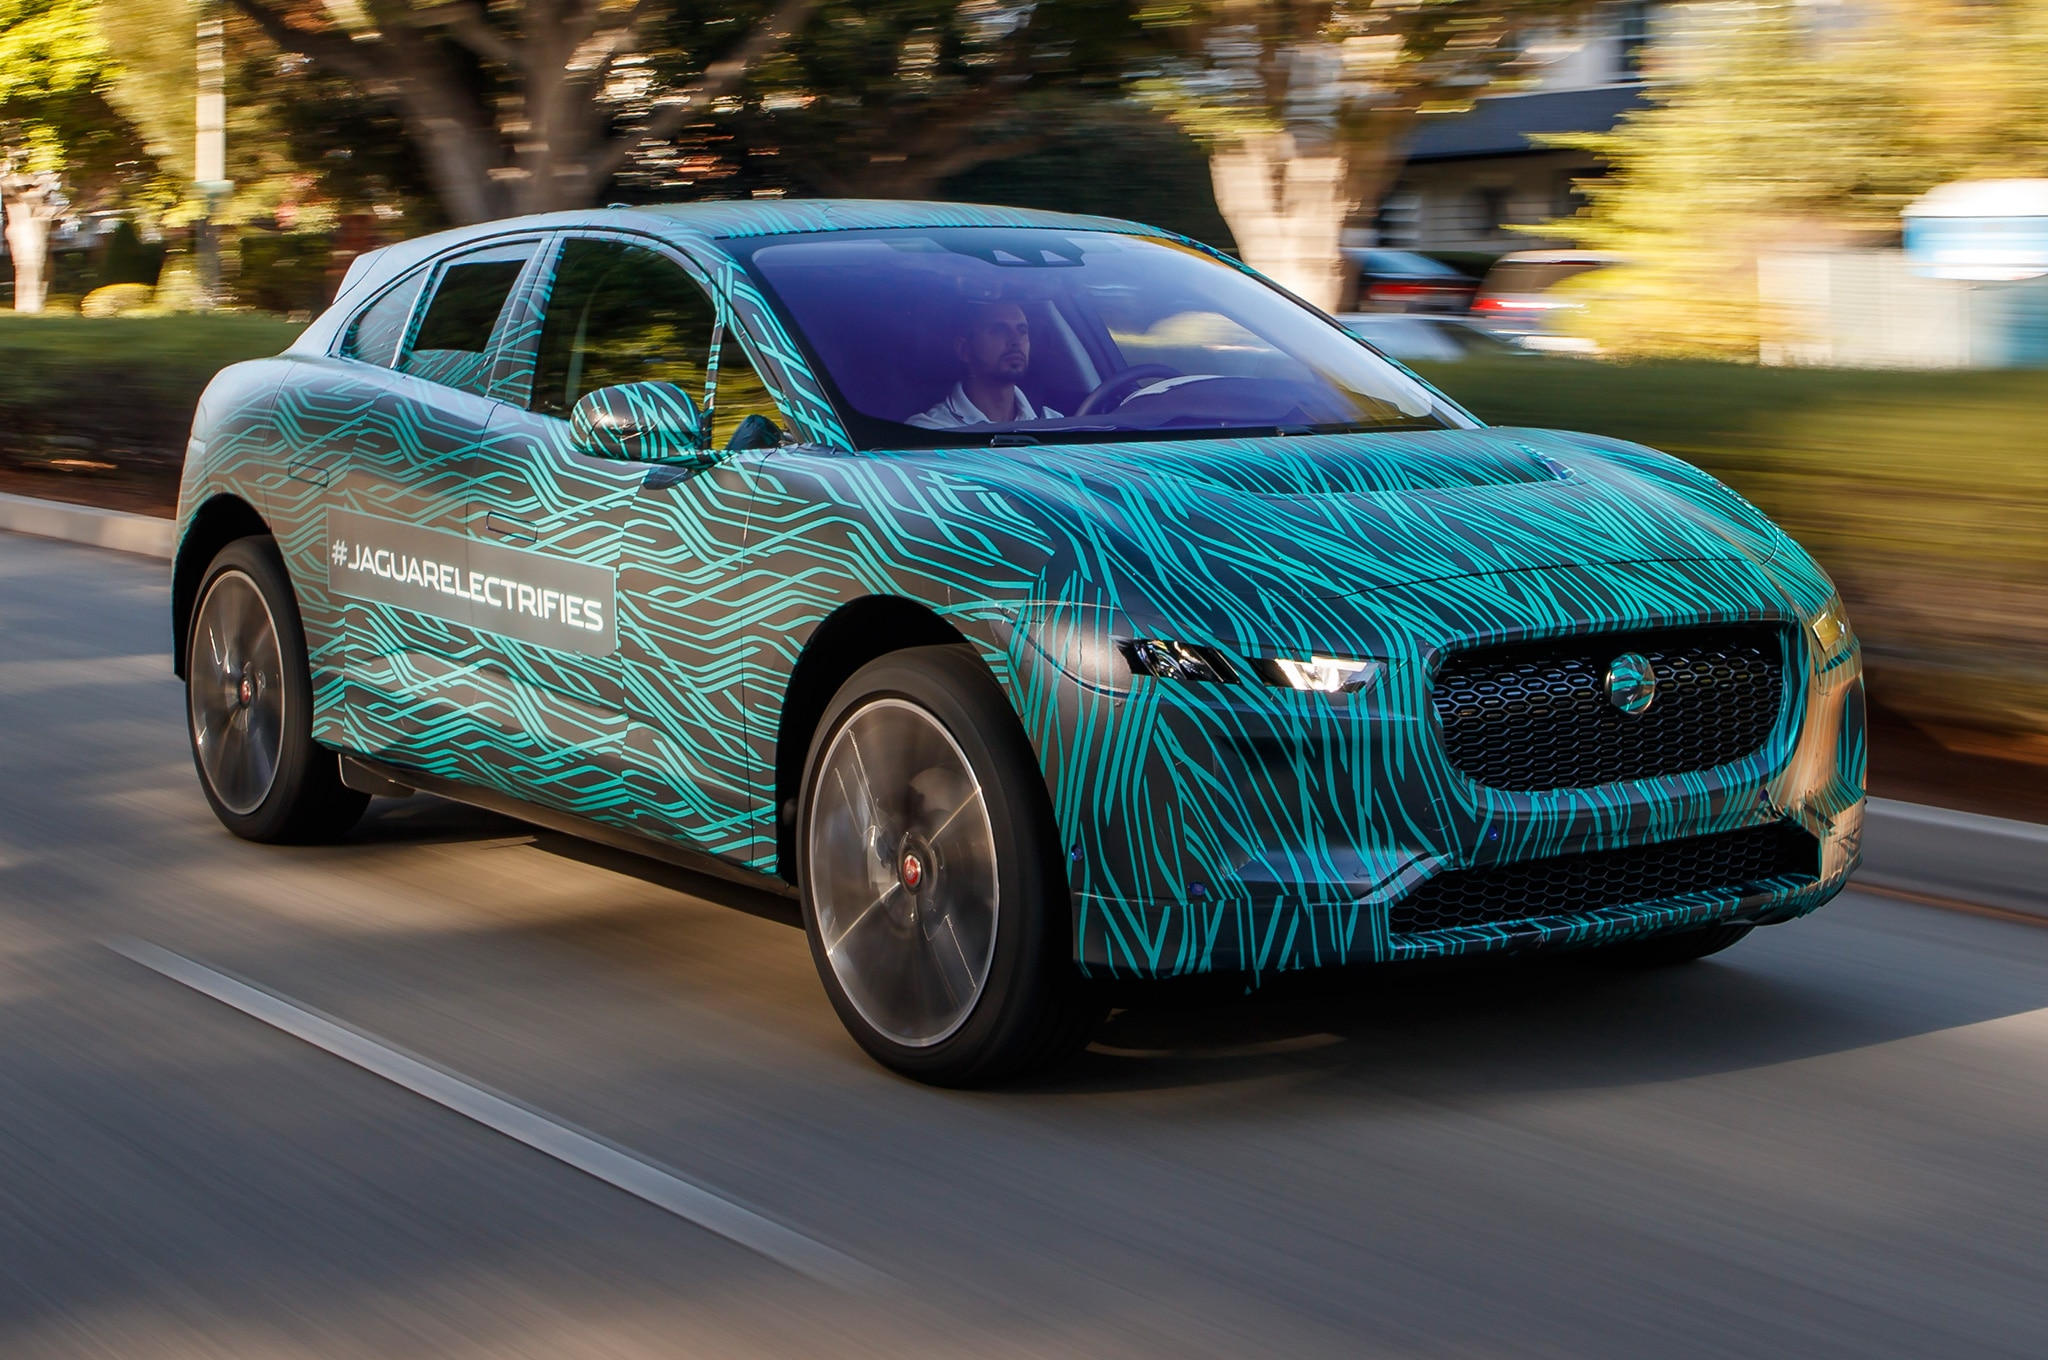 2019 Jaguar I Pace Prototype In Motion